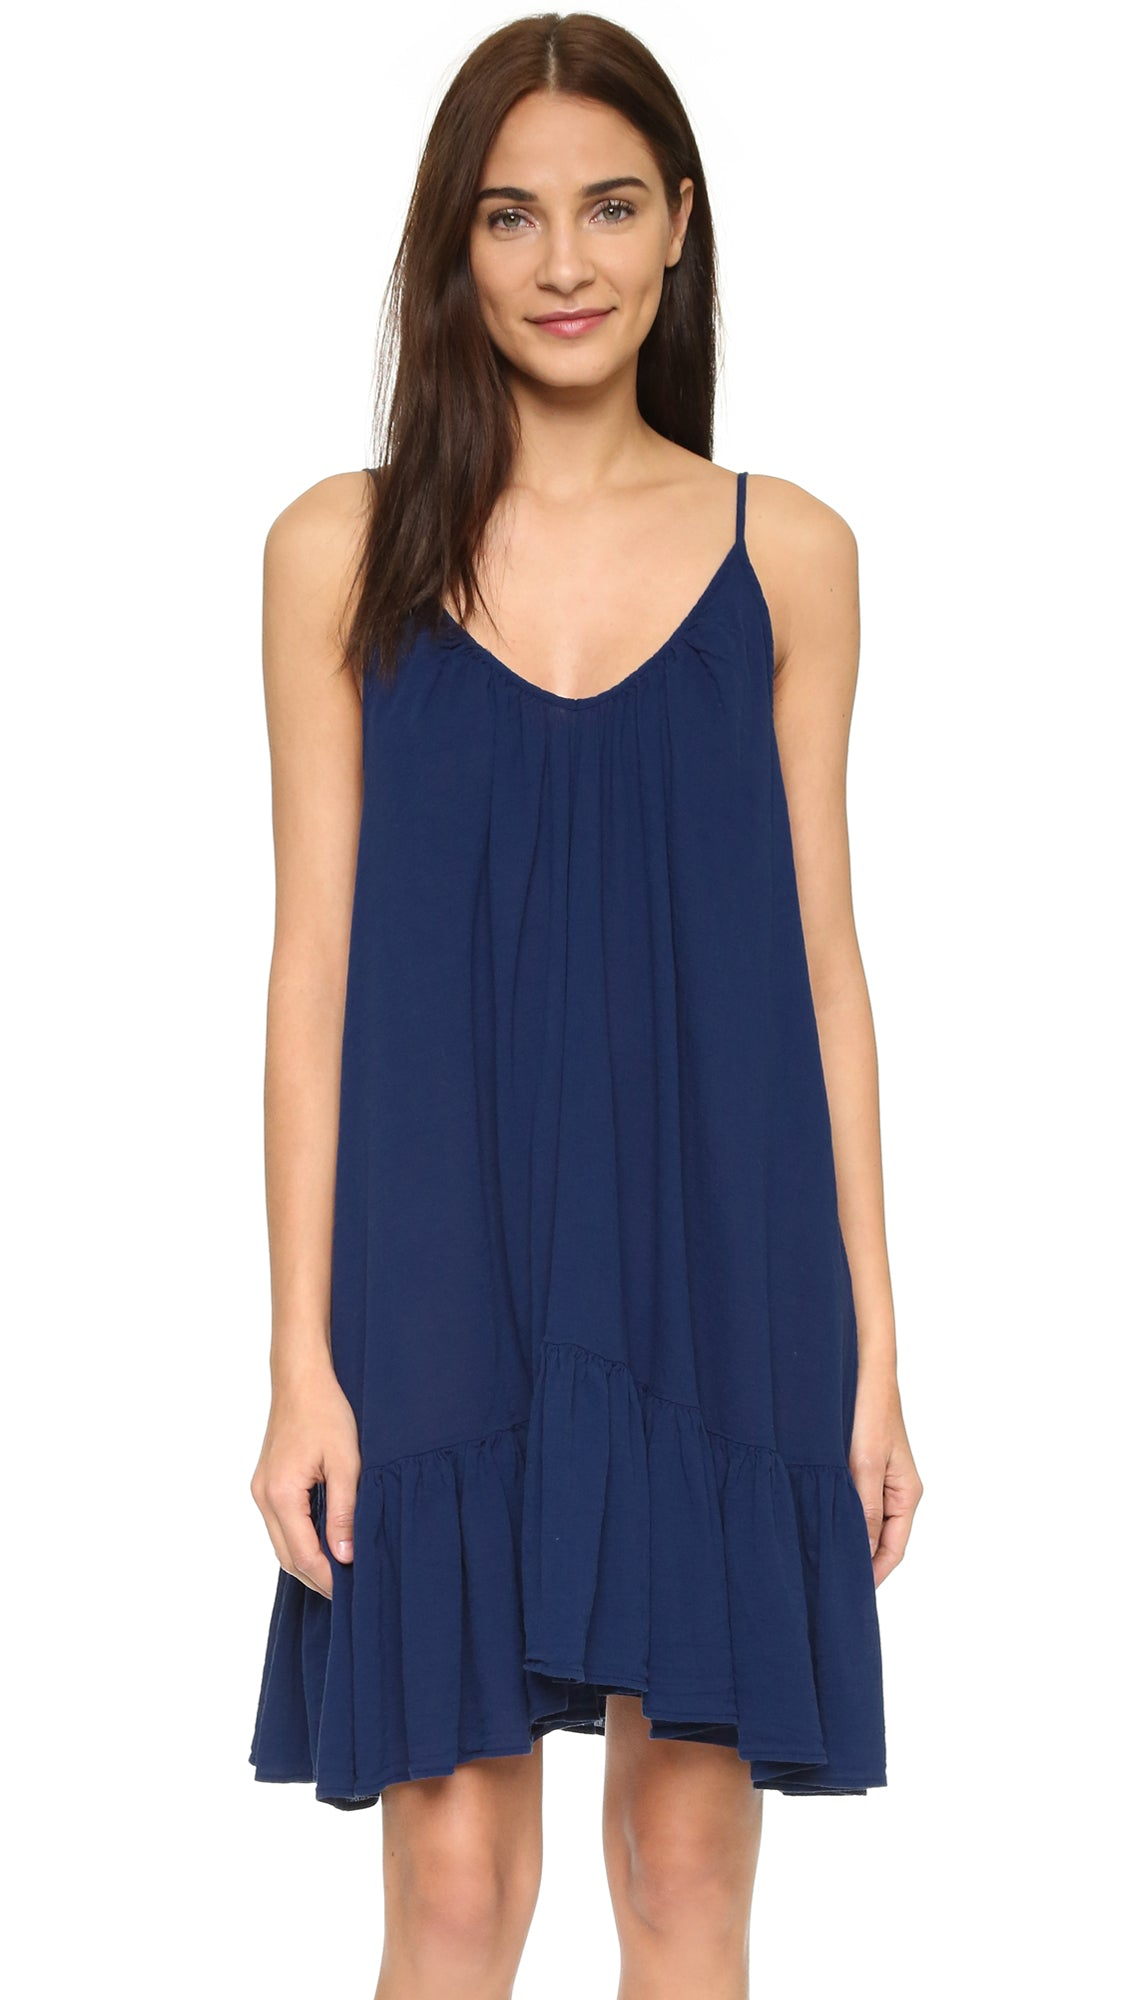 9Seed St Tropez Ruffle Cover Up Mini Dress Pacific Navy Blue | ShopAA